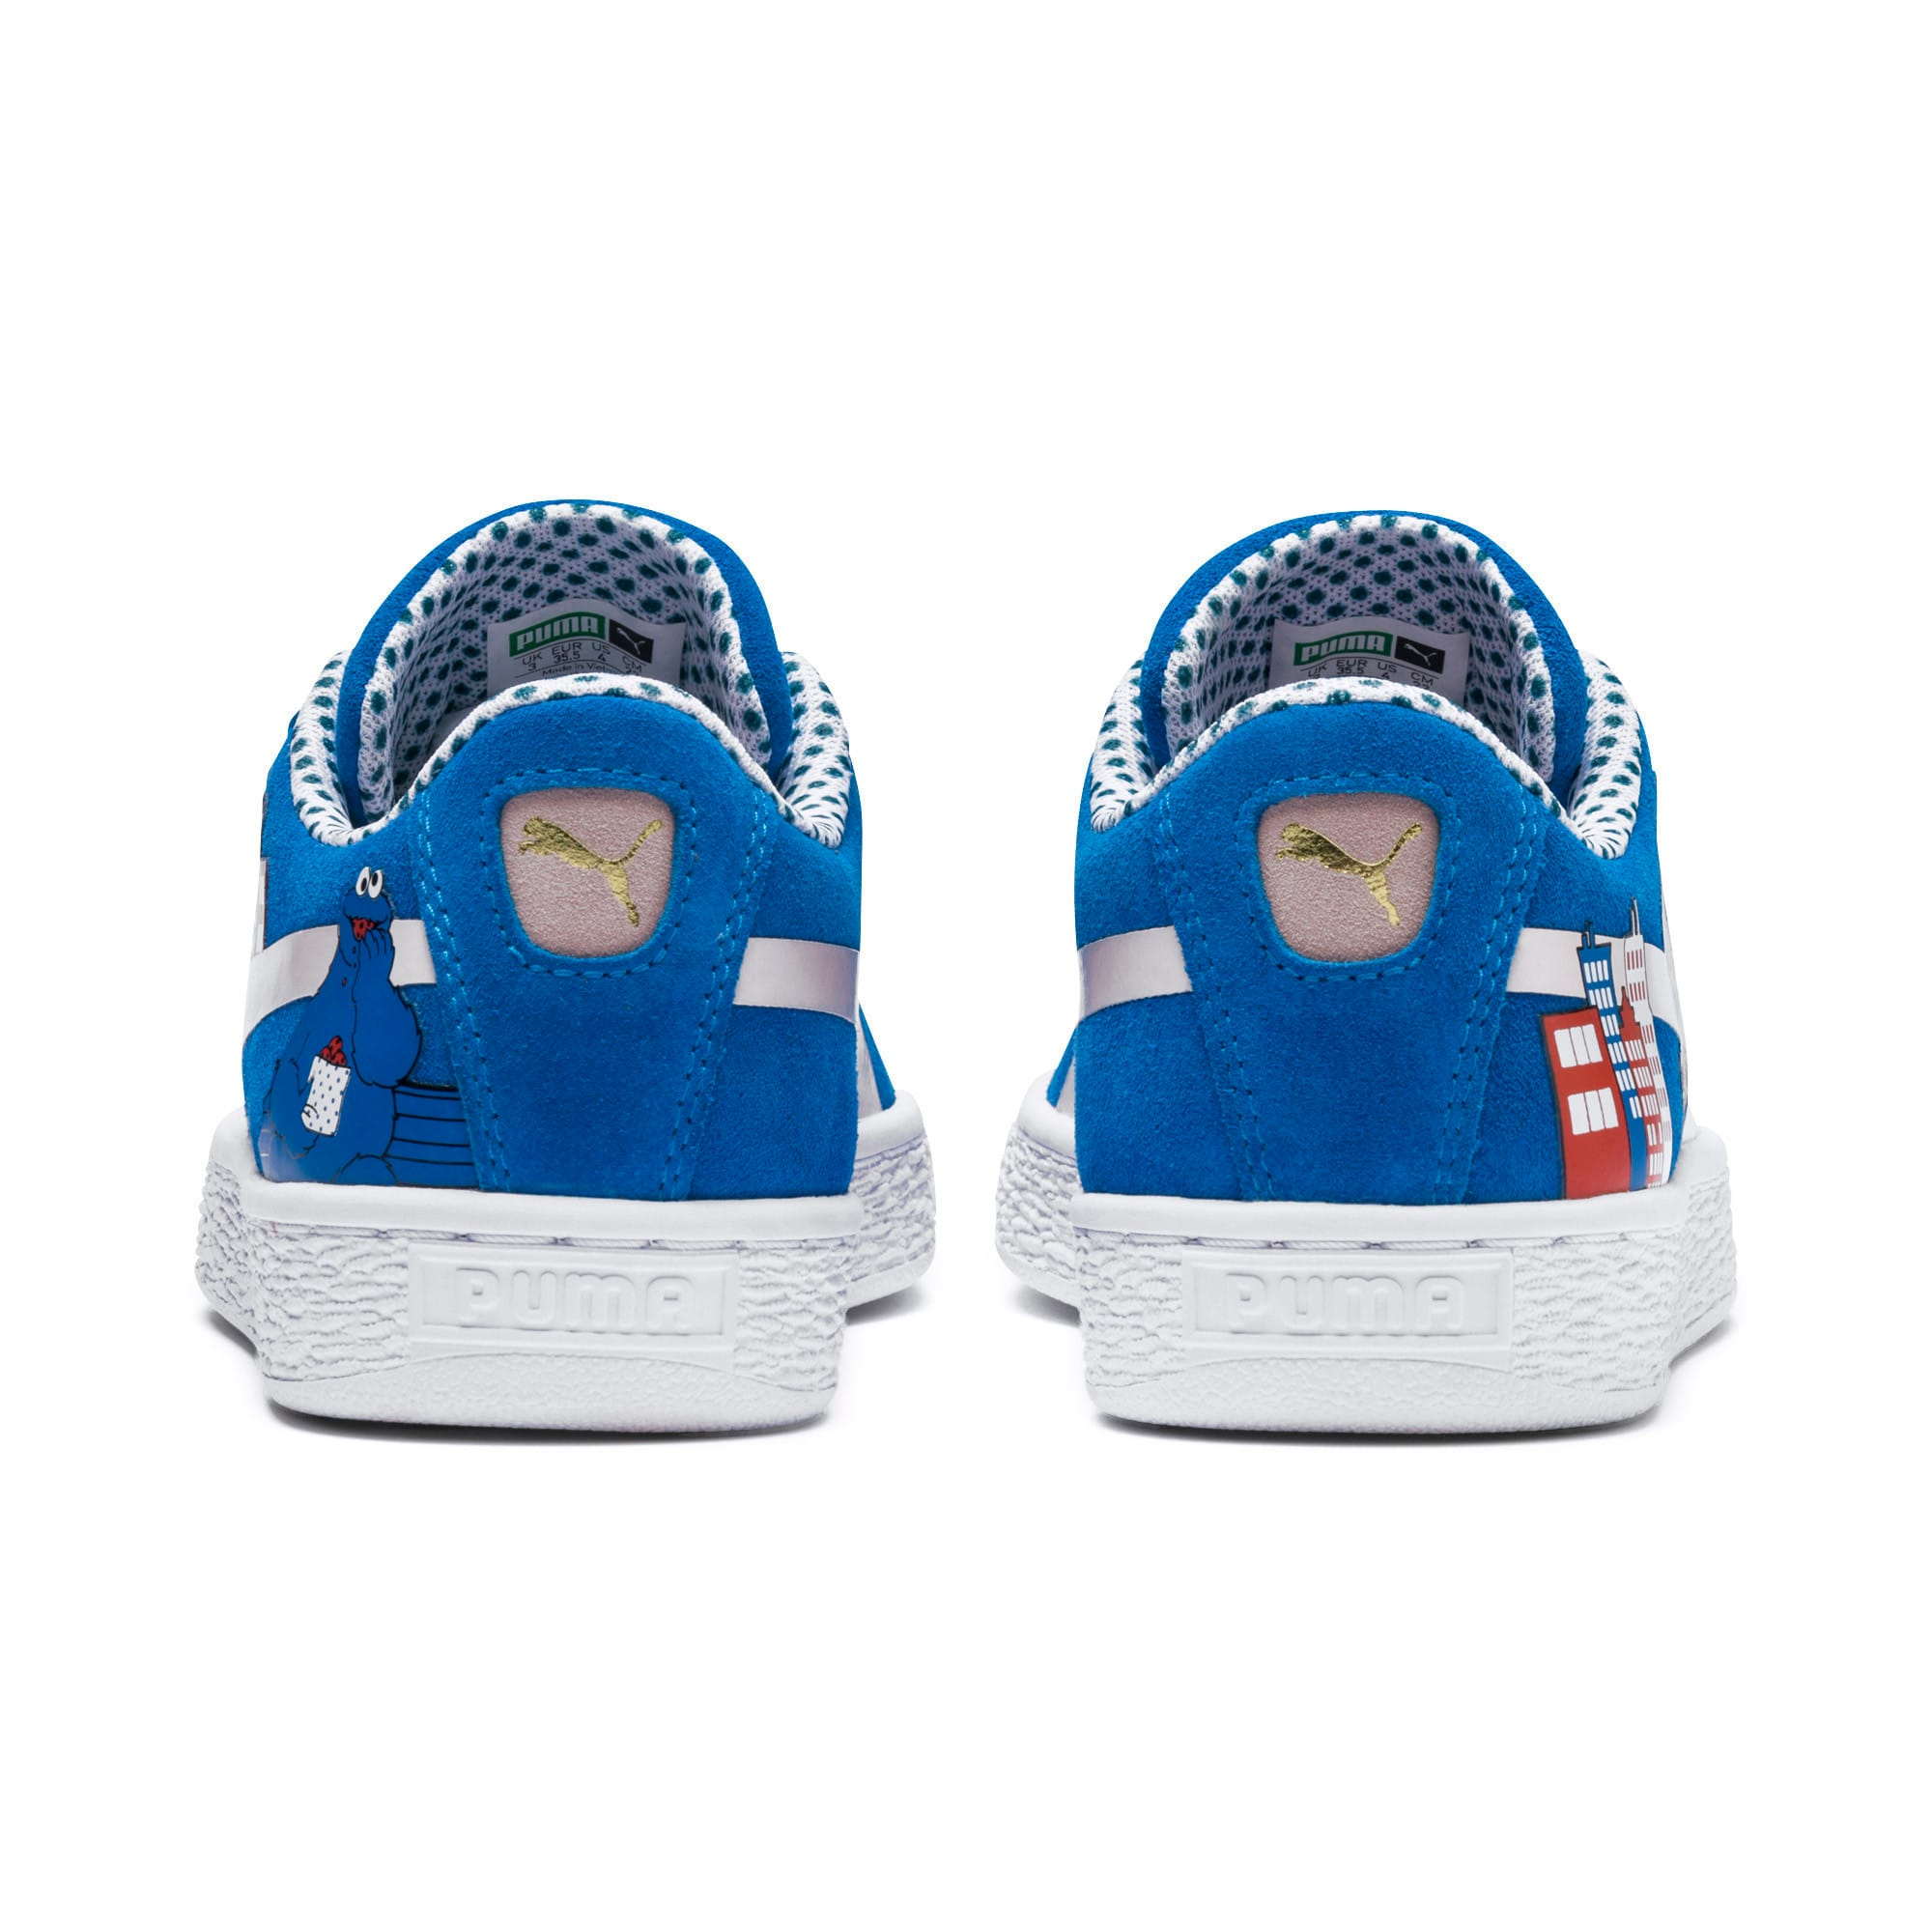 Thumbnail 2 of Sesame Street 50 Youth Suede Trainers, Indigo Bunting-Veiled Rose, medium-IND